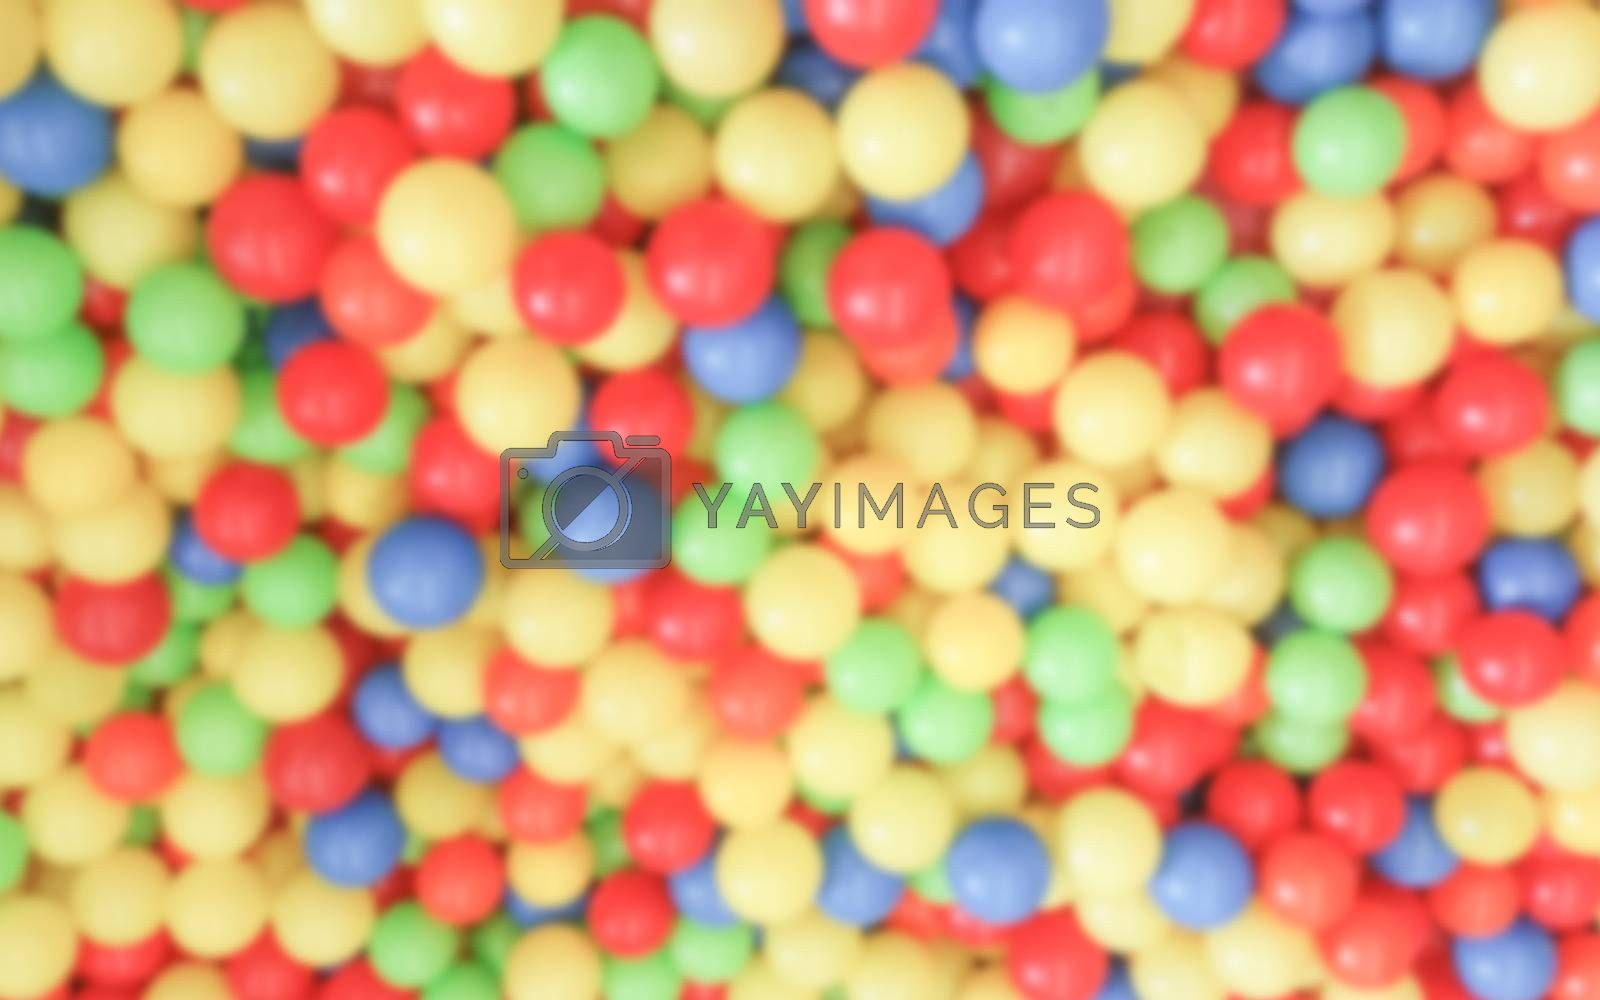 Defocused background with colorful plastic balls in children's playground pool. Intentionally blurred post production for bokeh effect